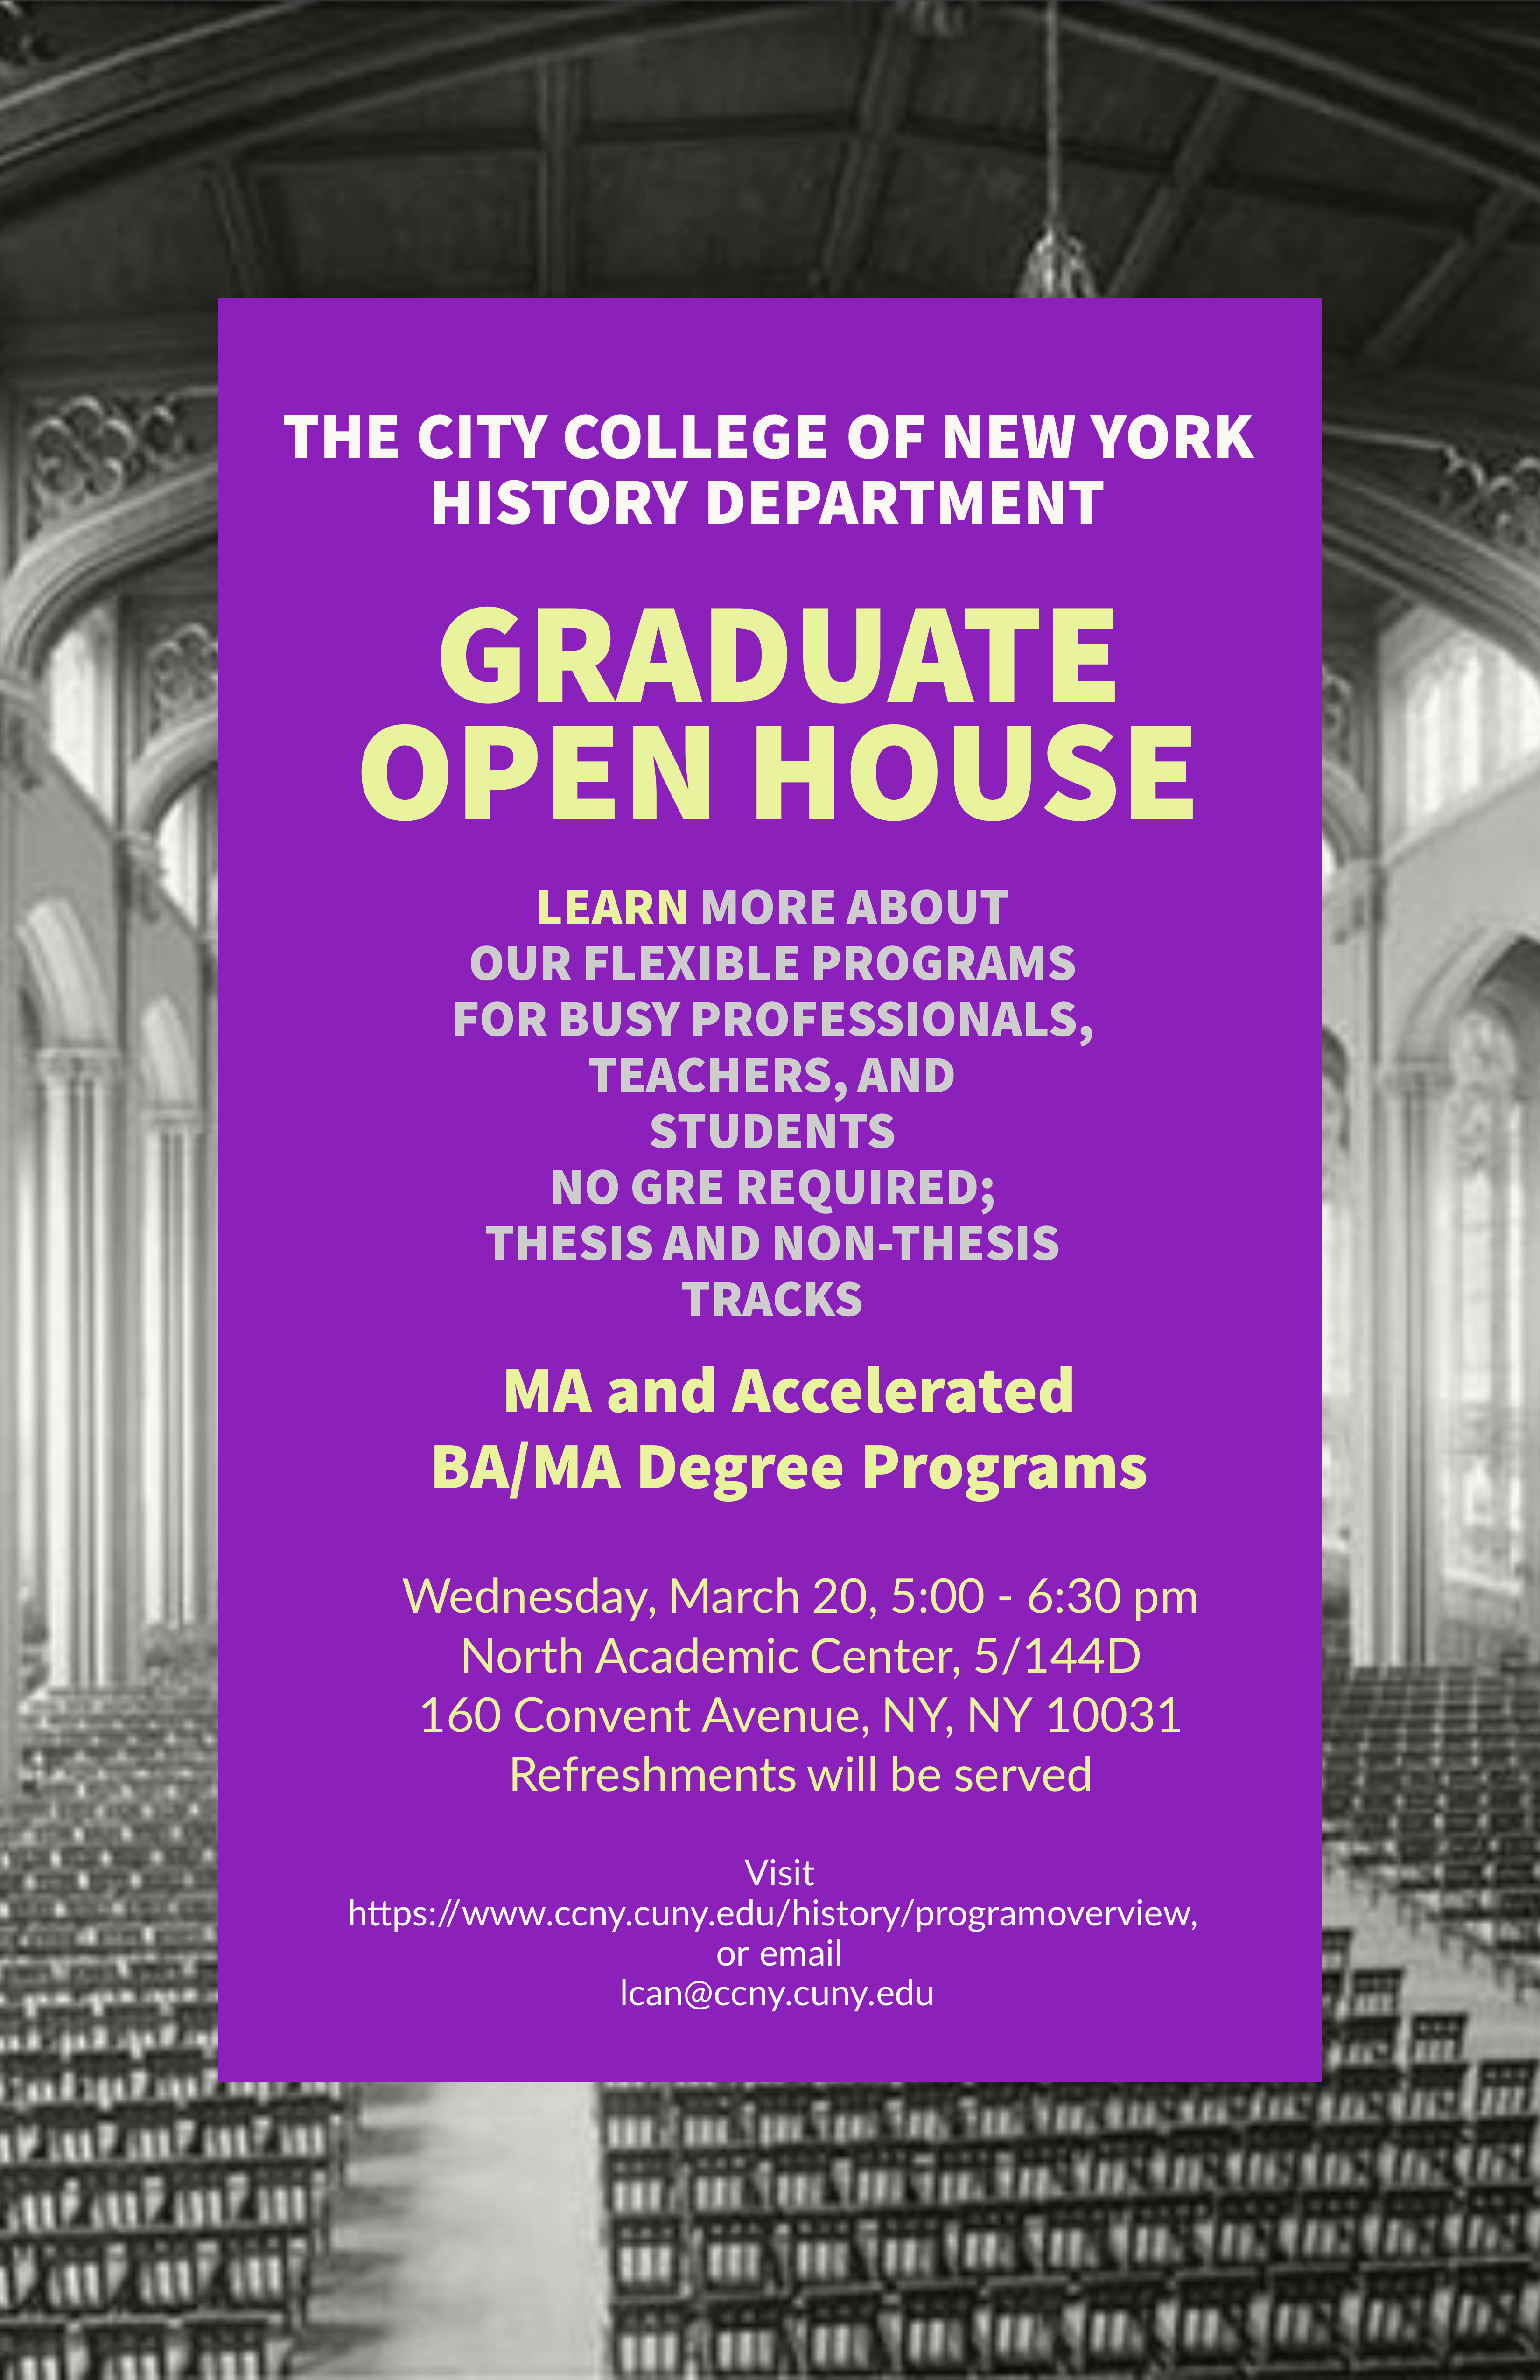 History Department Open House March 20, 2019